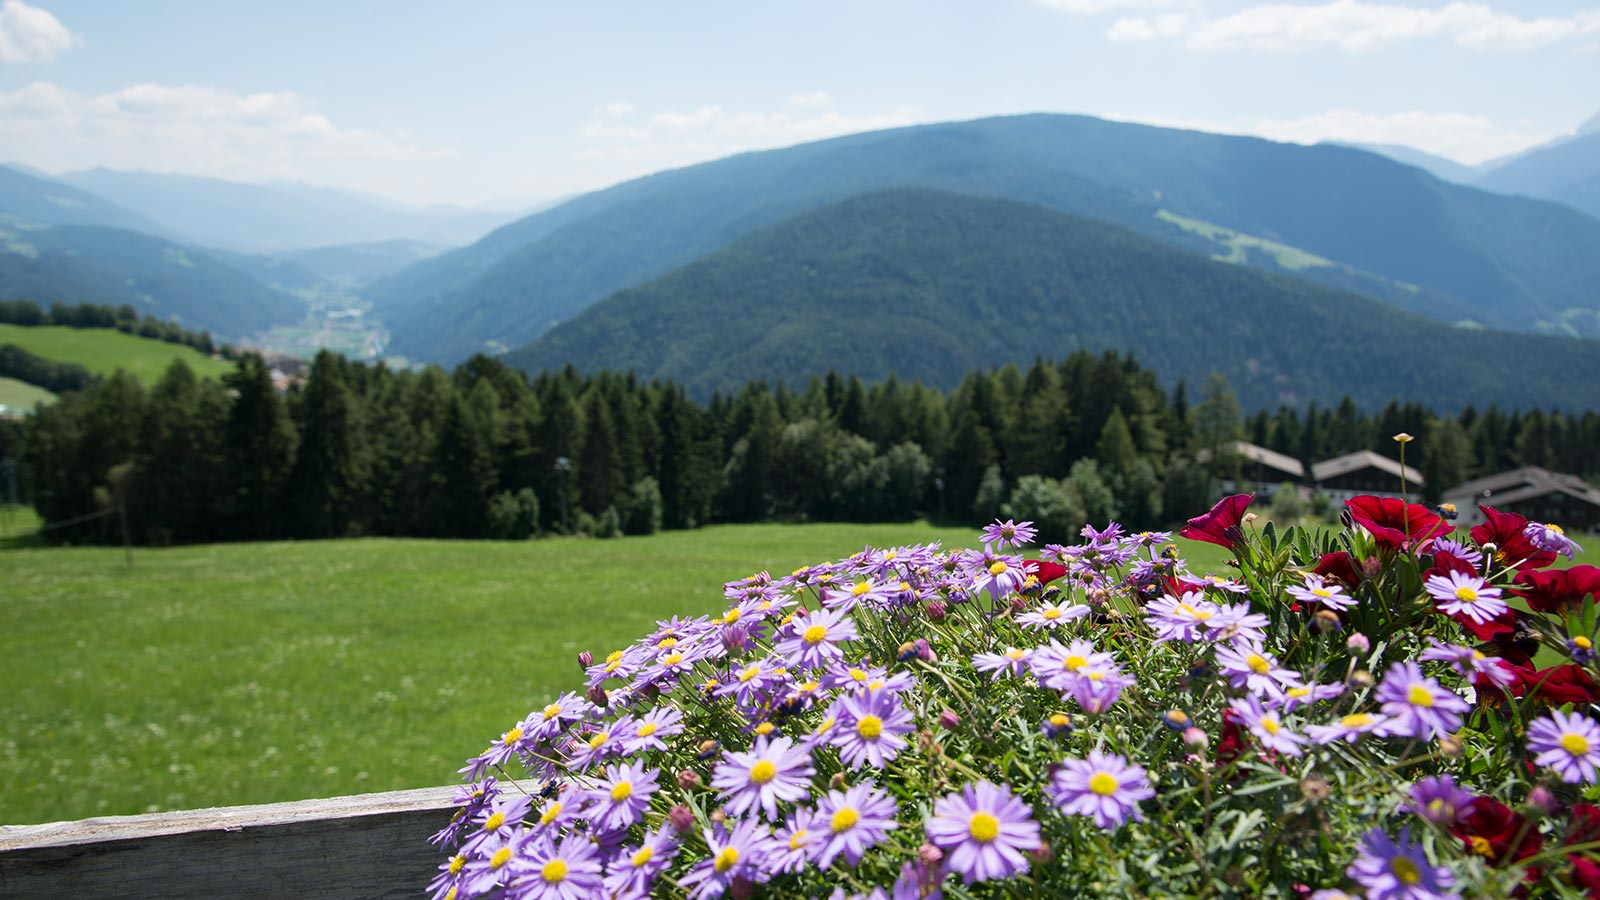 View of the hills around Meransen from the balcony of the Pensione Wiesenrain with flowers in the foreground